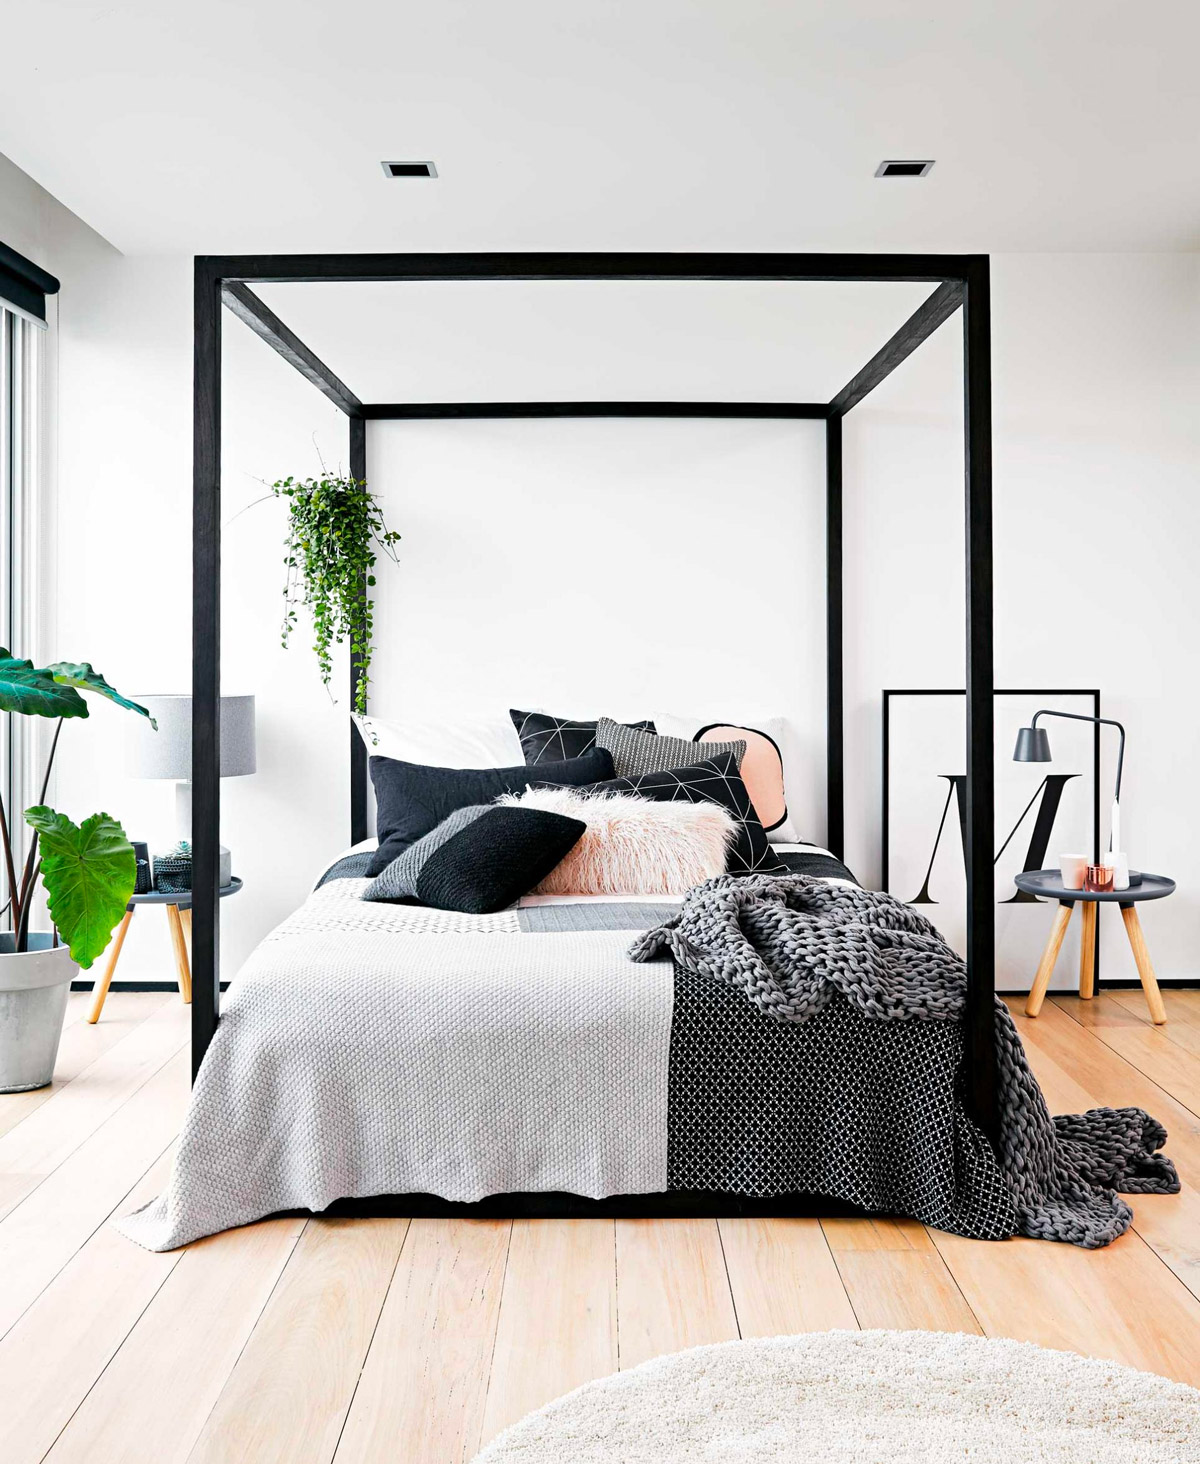 32 fabulous 4 poster beds that make an awesome bedroom for Bed designs 2016